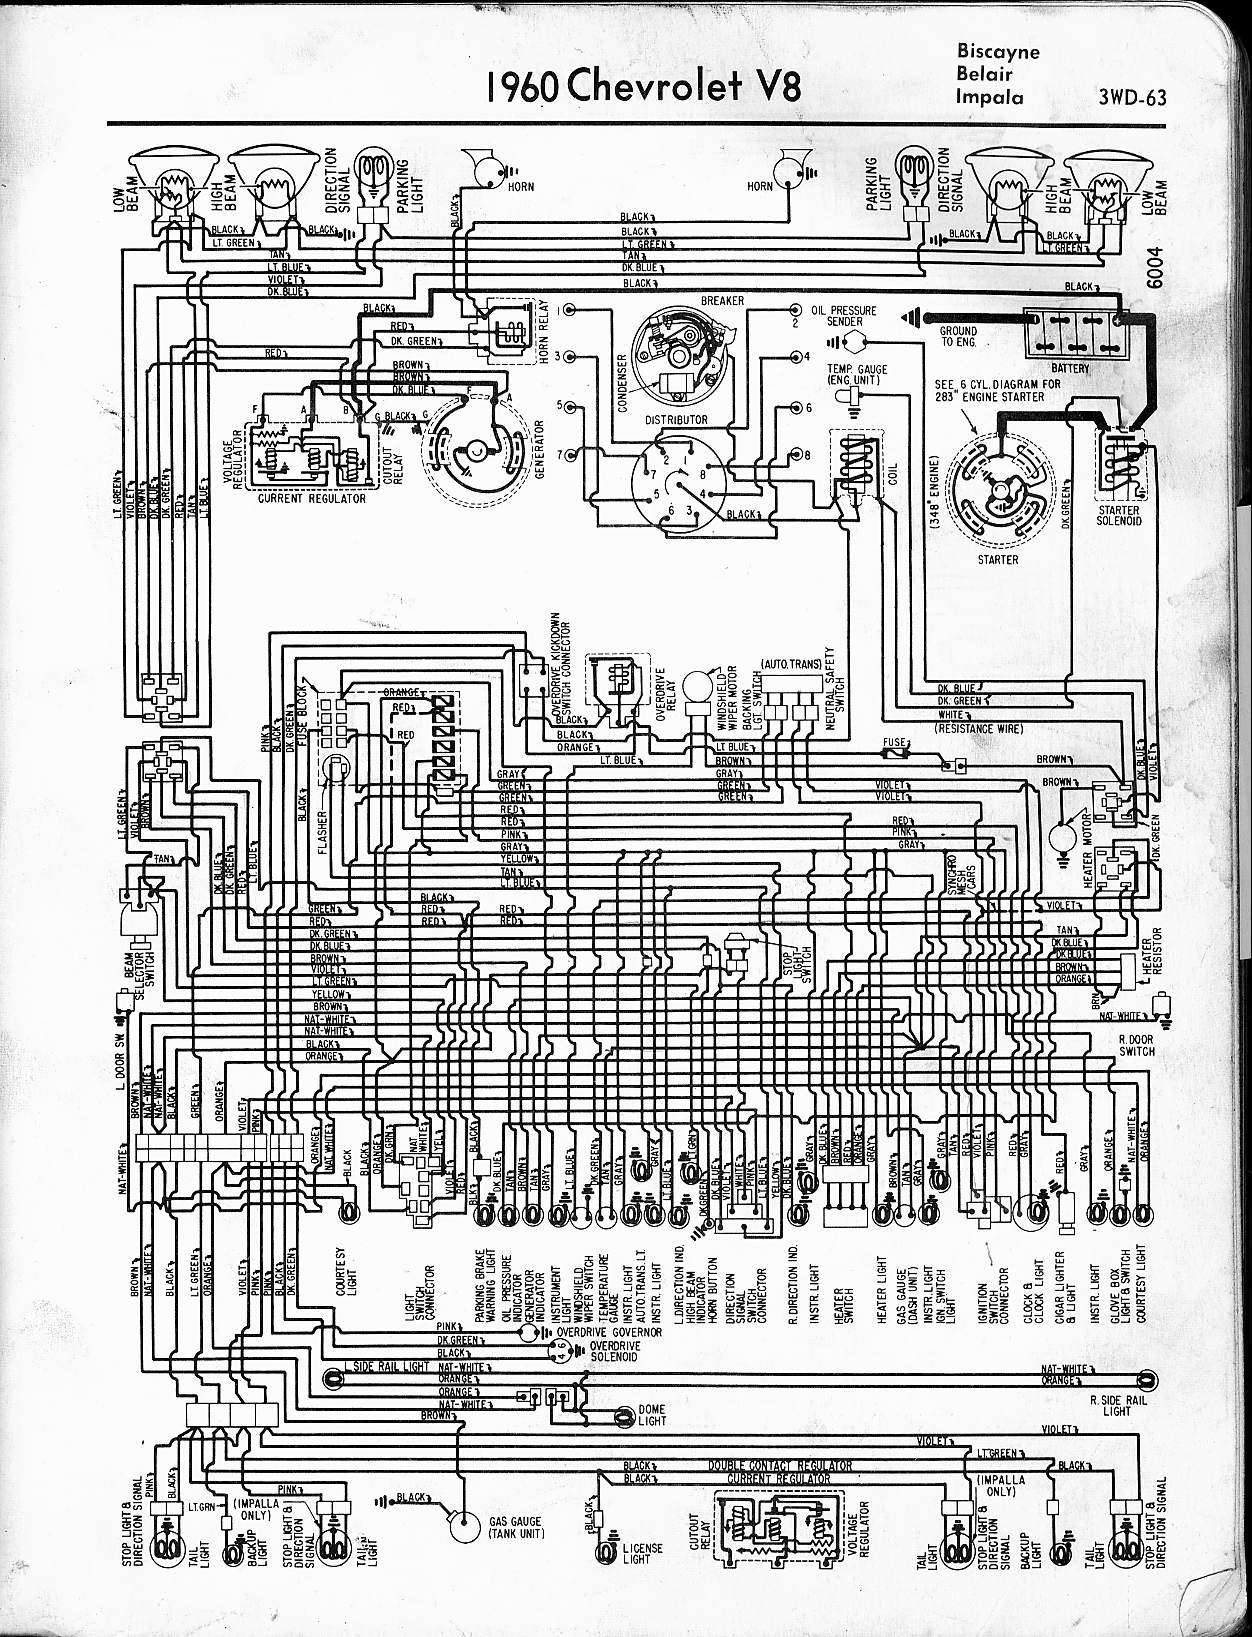 2006 impala wiring schematic Collection-57 65 Chevy Wiring Diagrams 13-t